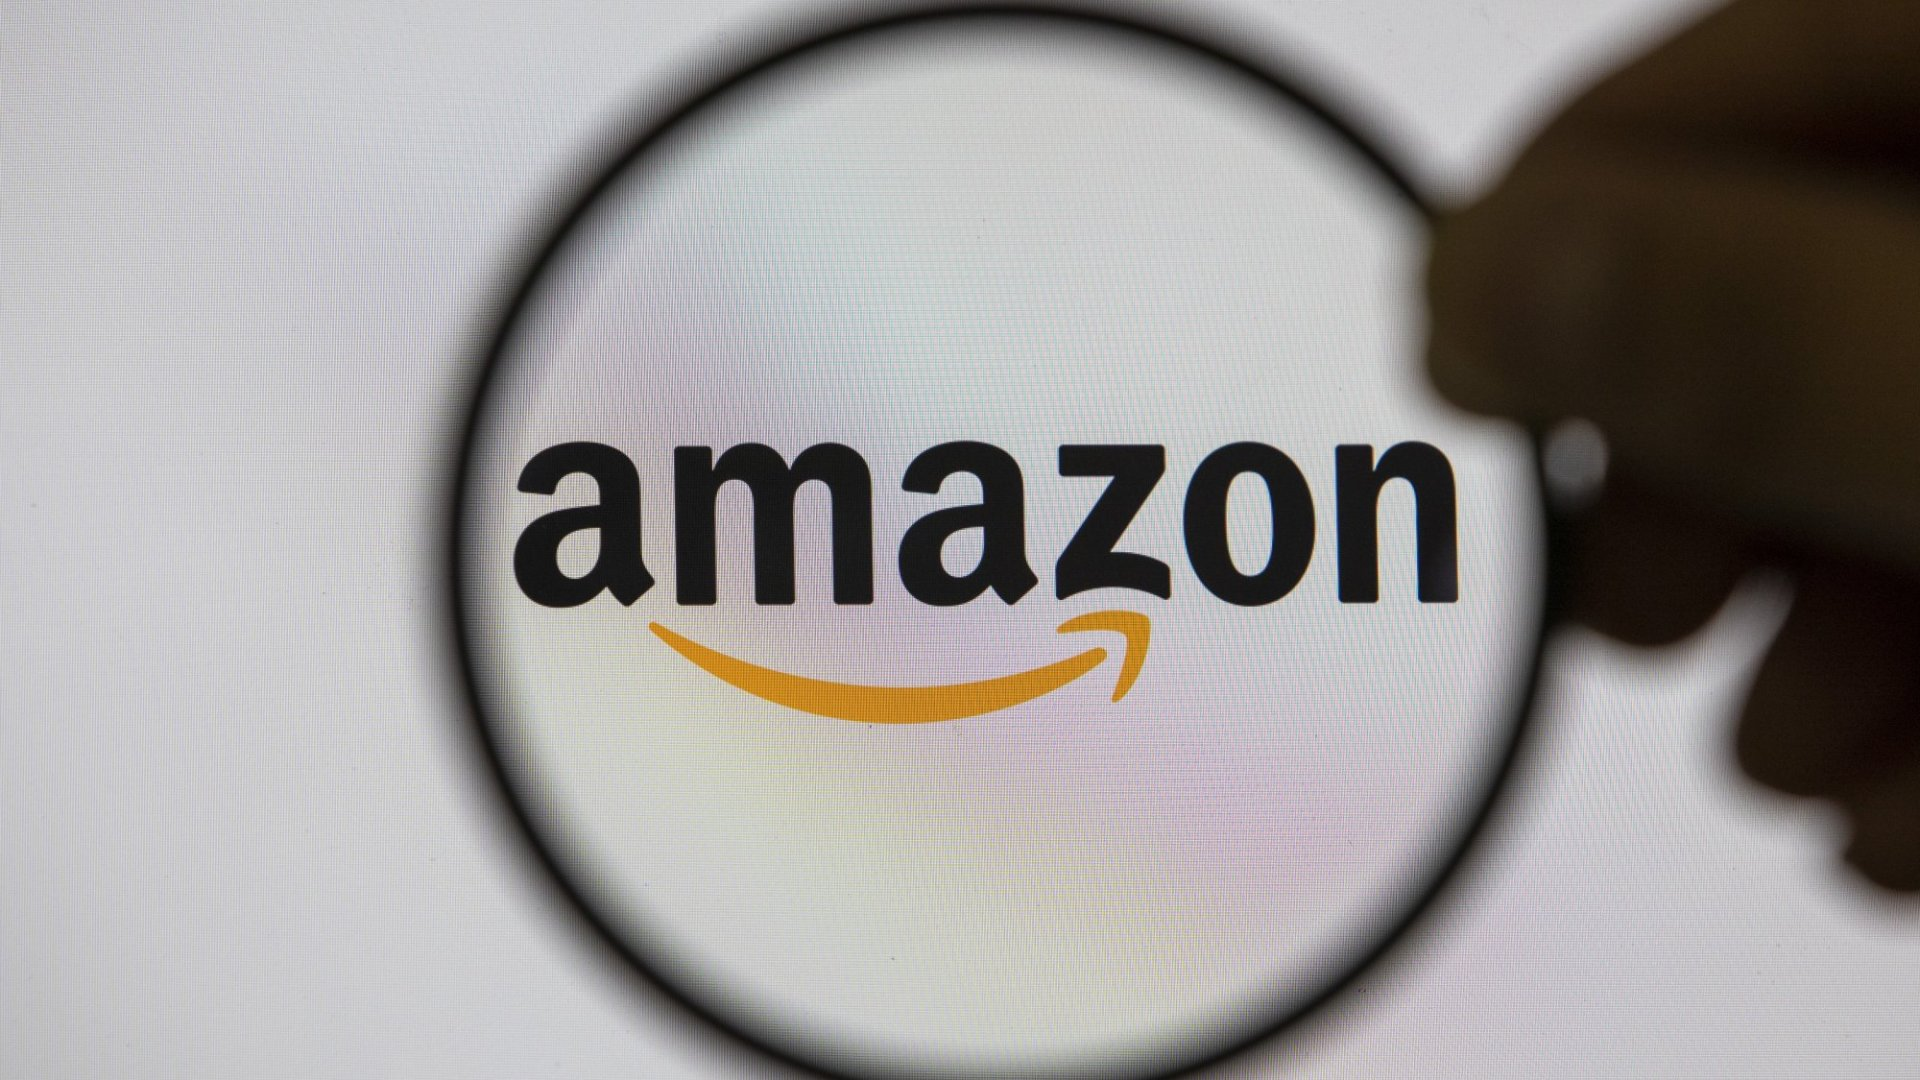 The 14 Principles That Drive Amazon's Success